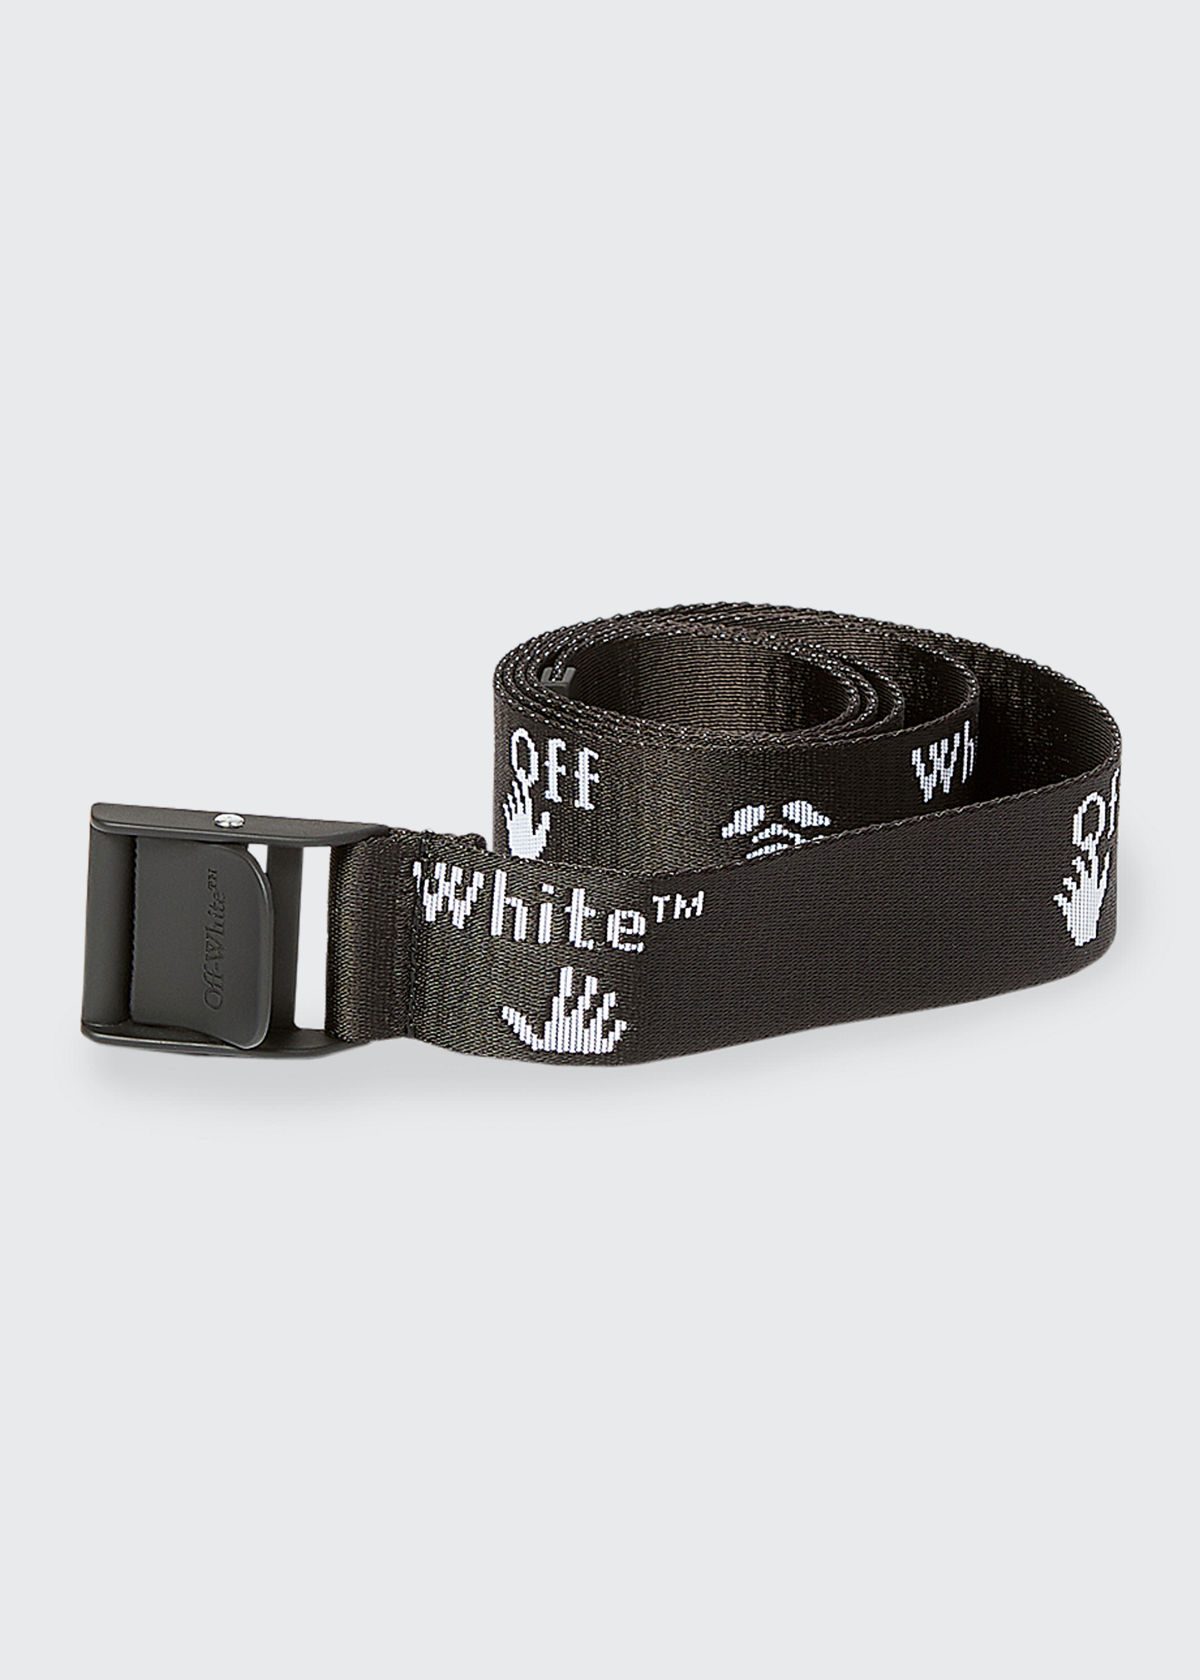 Off-White MEN'S INDUSTRIAL LOGO GRAPHIC WEB BELT